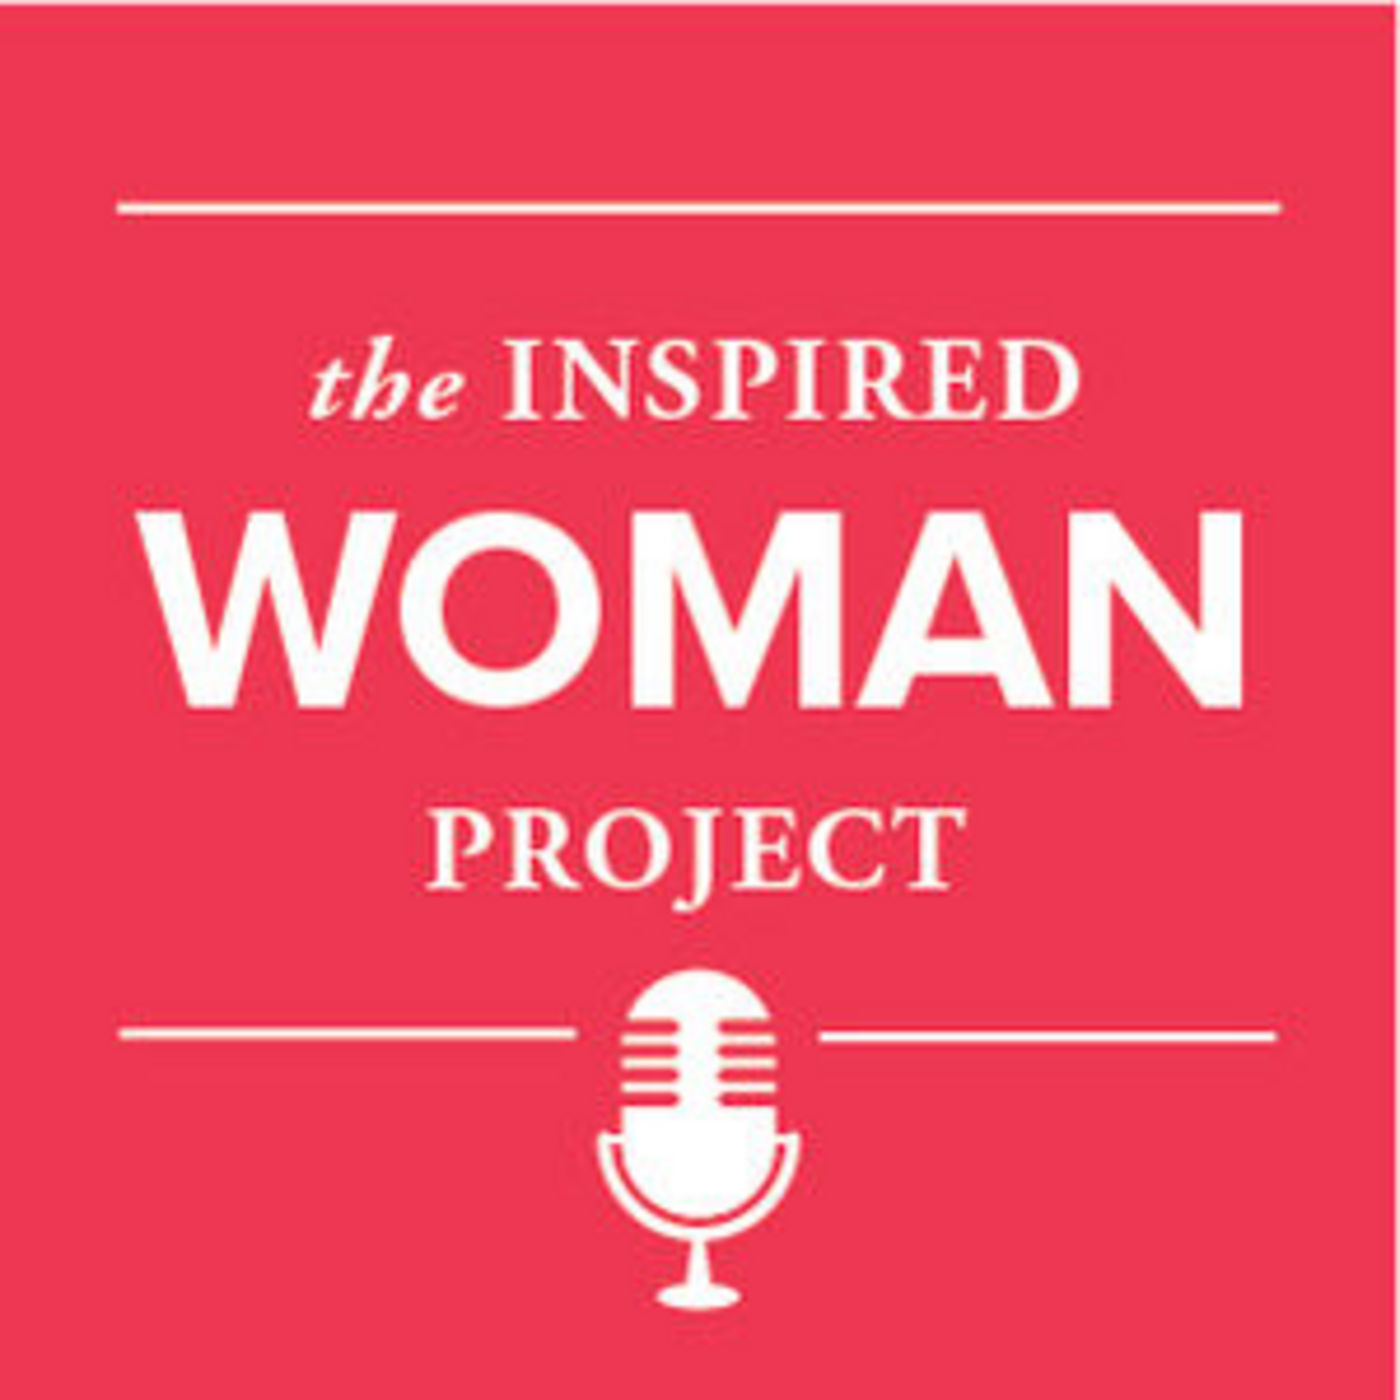 The Inspired Woman Project